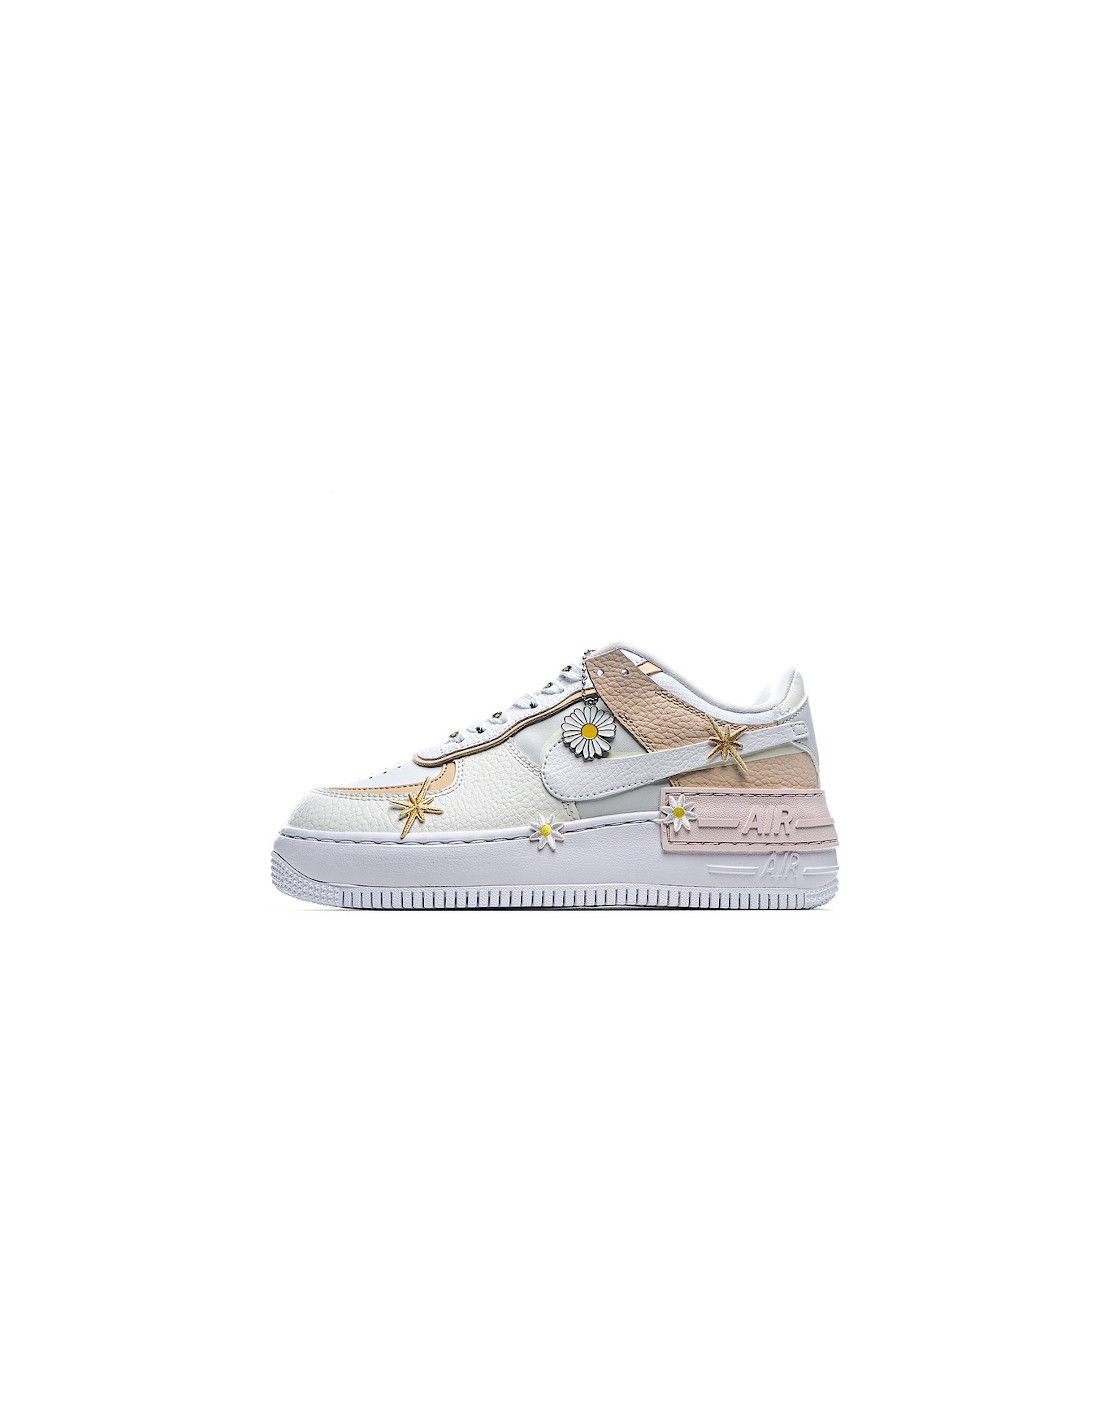 Nike Air Force 1 Low Shadow Se Spruce Aura Women S Shoe